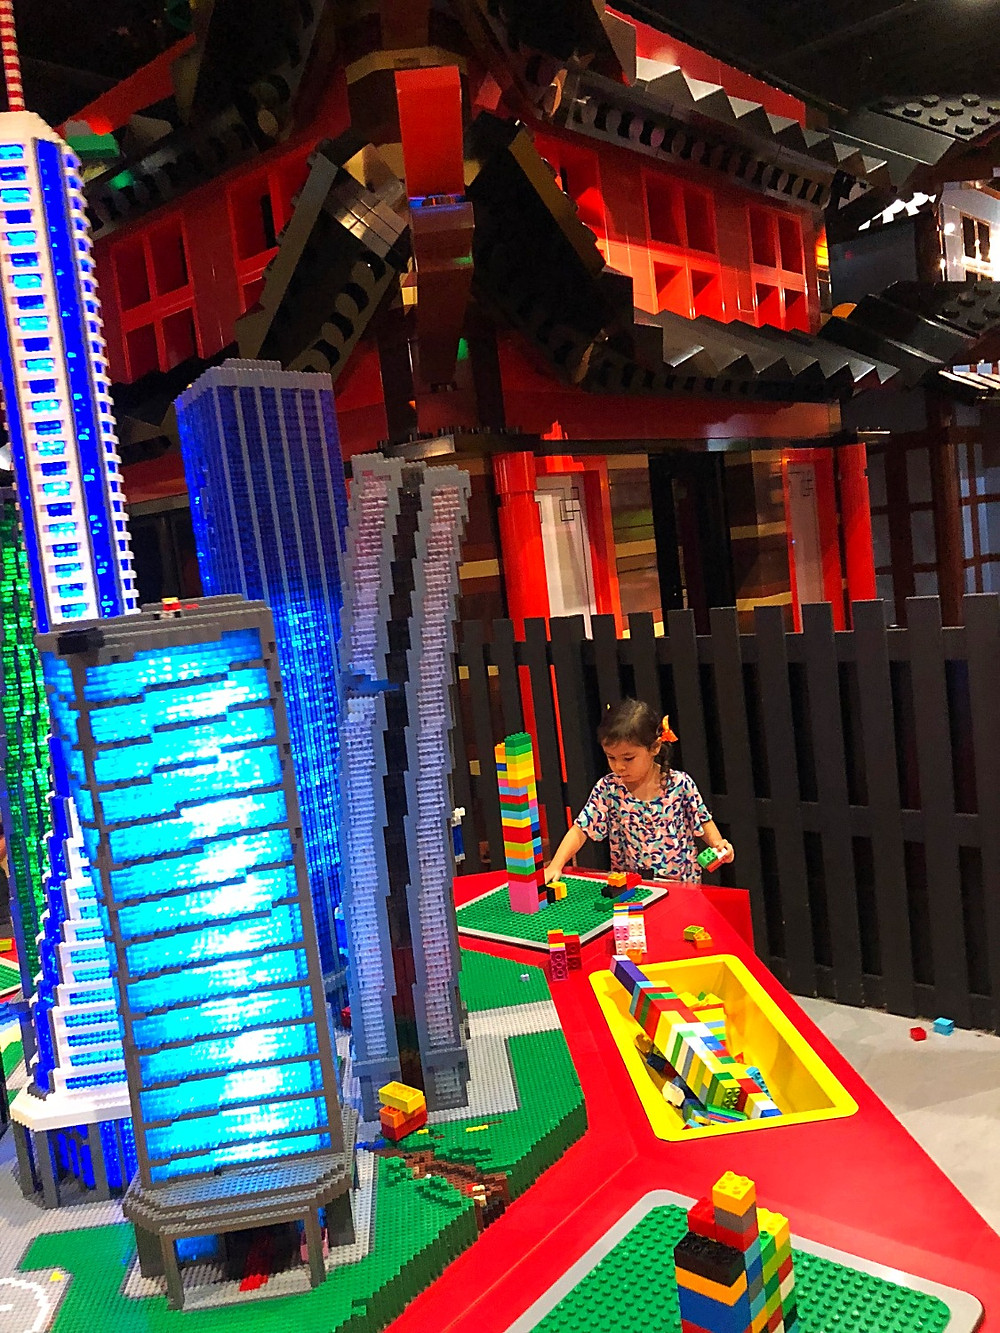 LEGOland Discovery Center, Ridge Hill kids, Ridge Hill family fun, Indoor Family fun, Winter indoor fun guide for kids, Curious G and Me